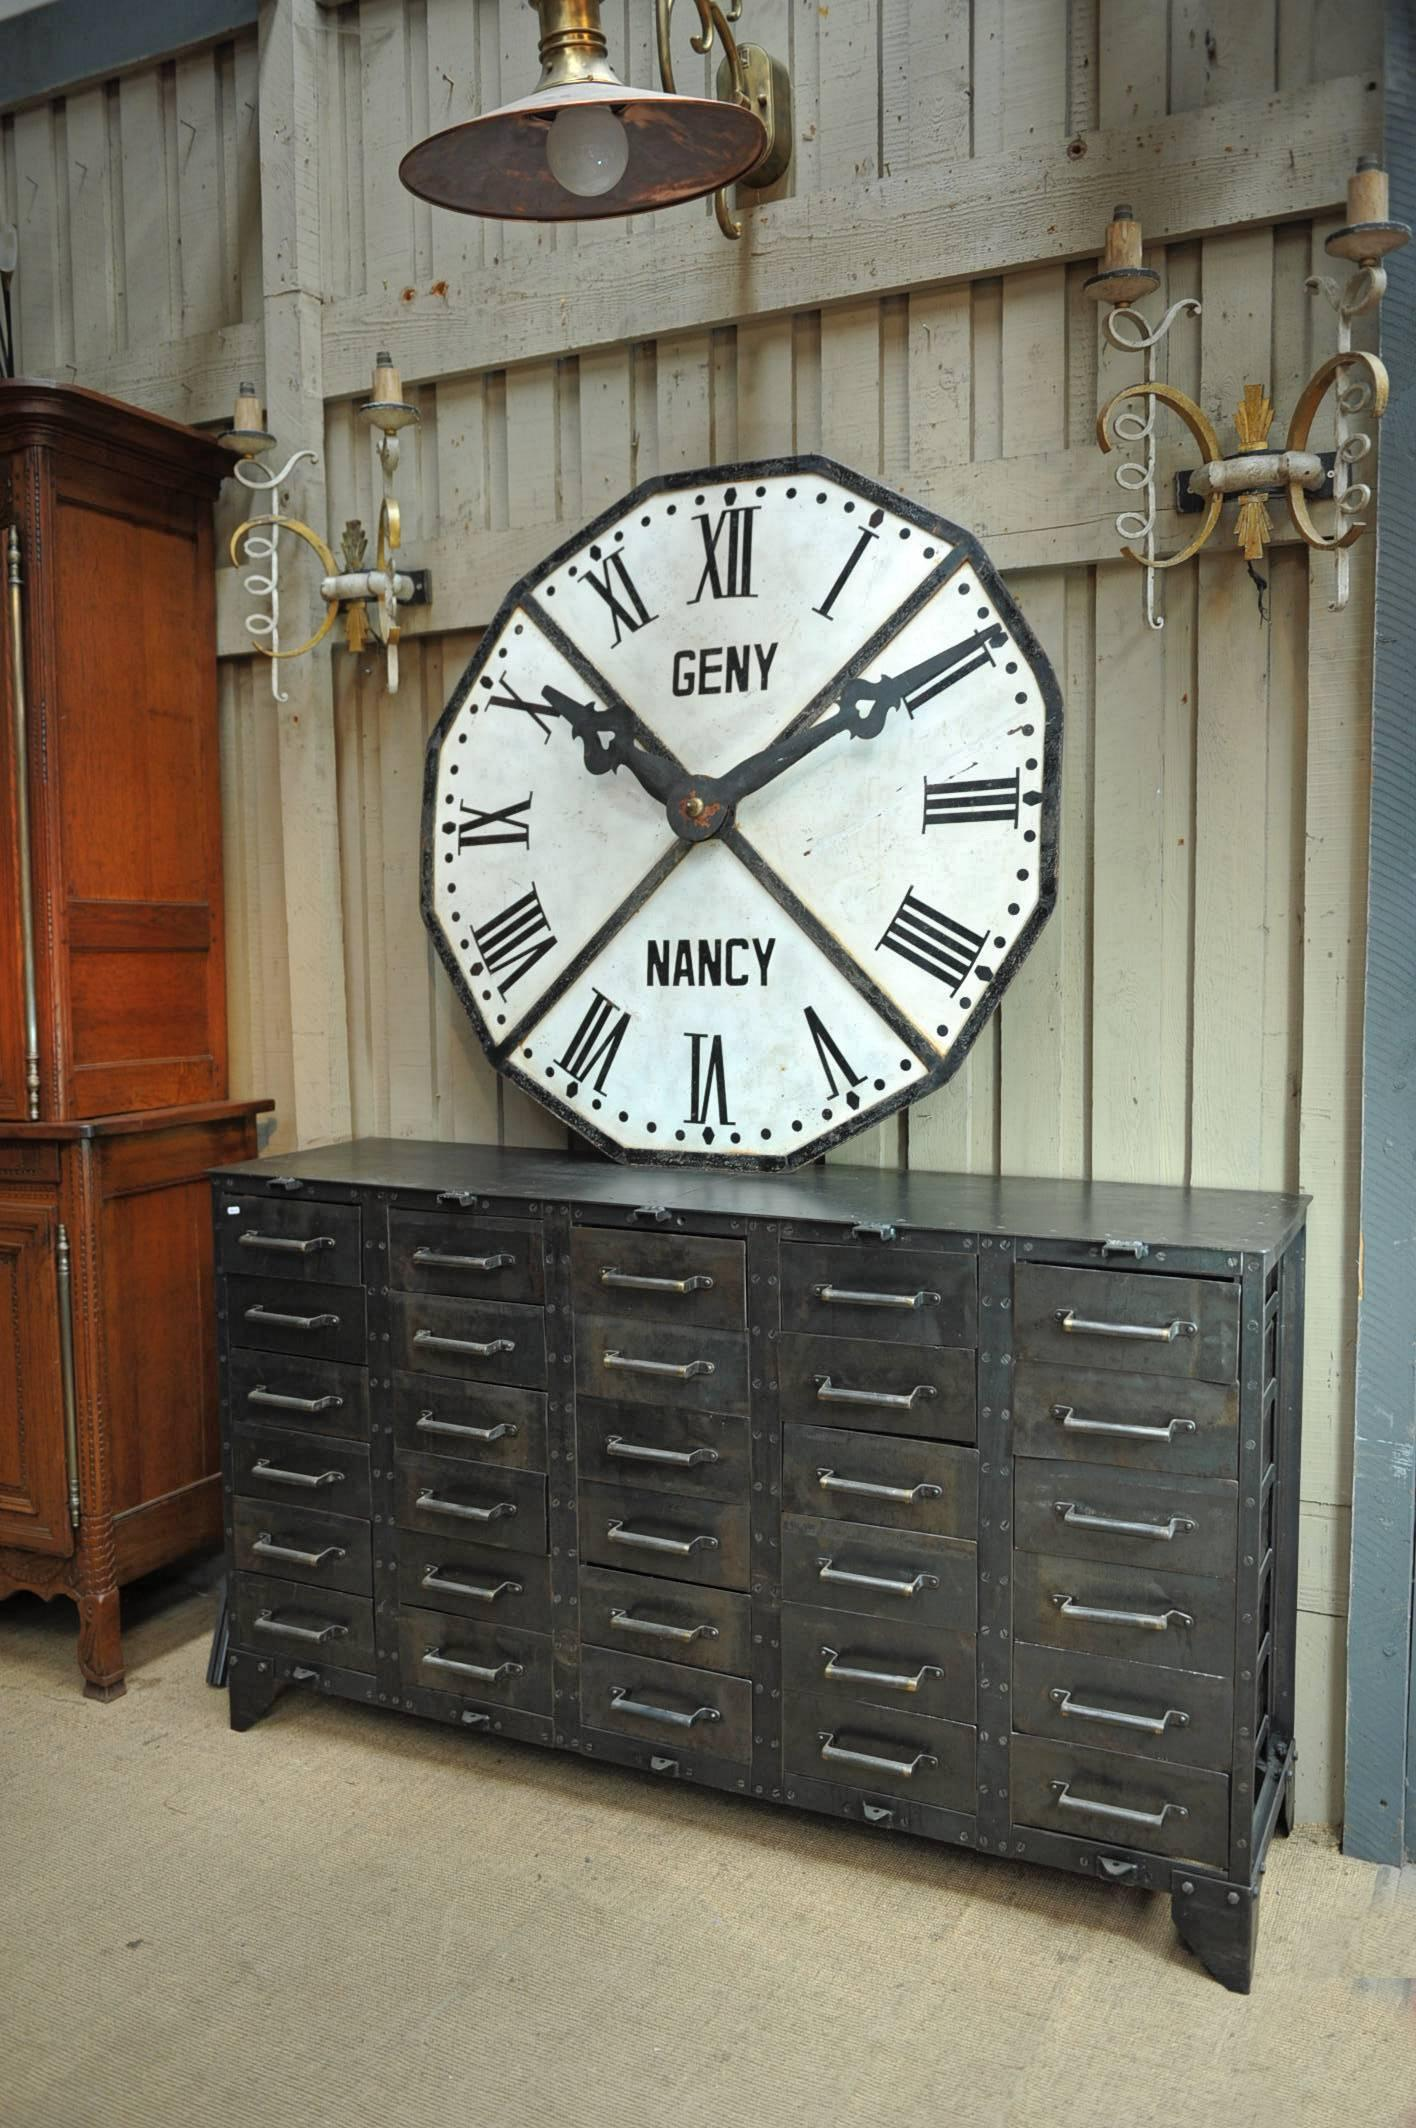 1900s french large iron train station clock face 3